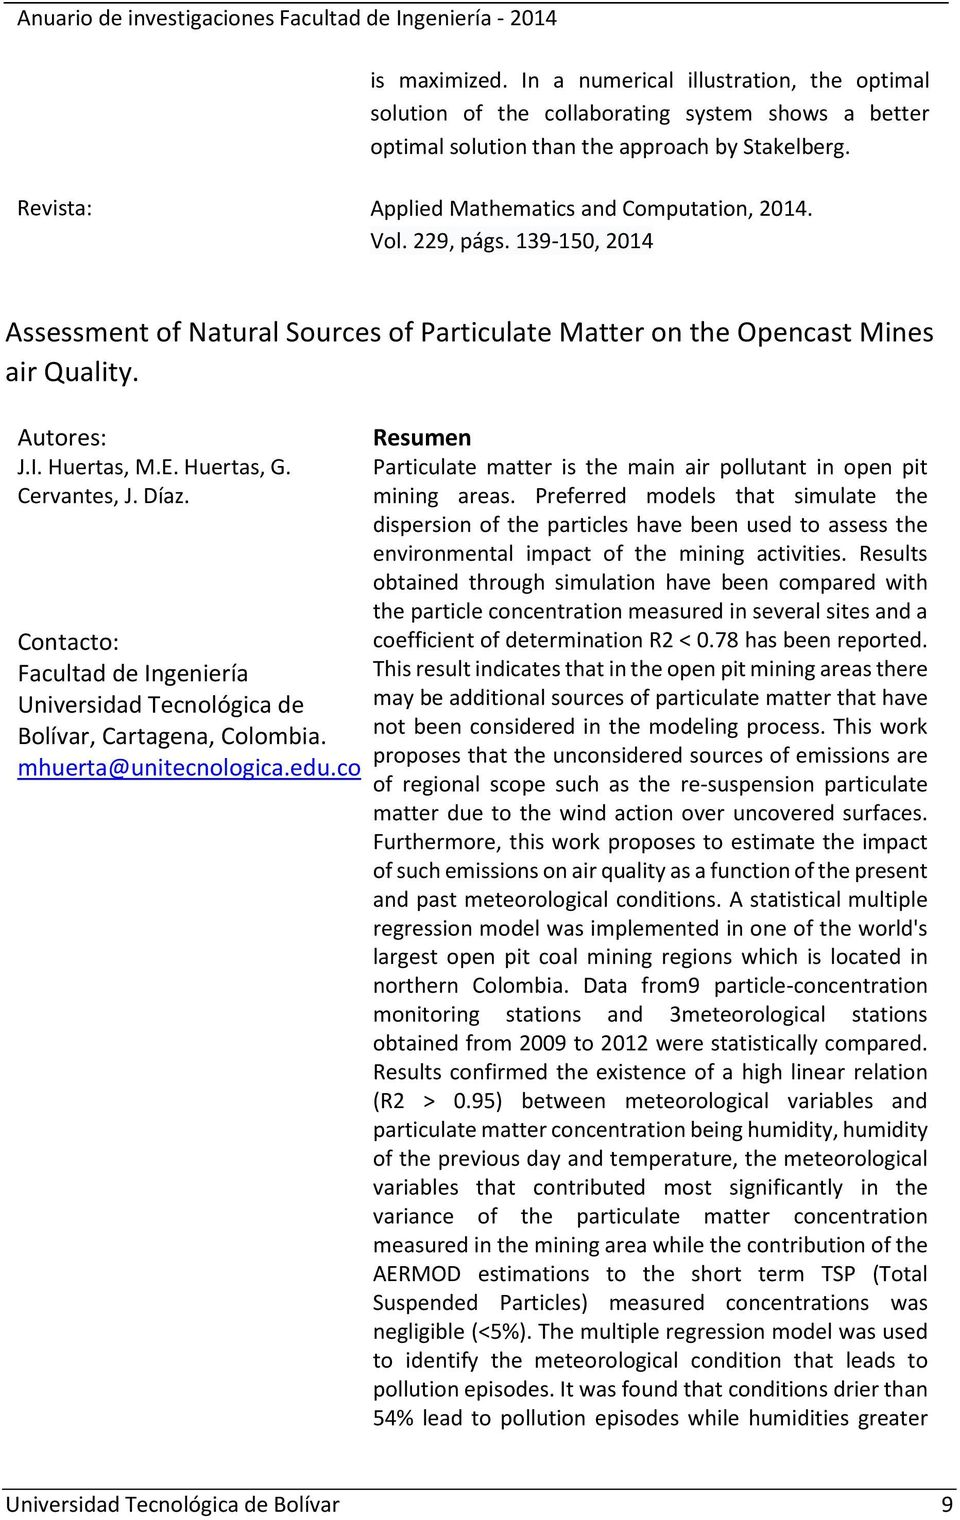 Huertas, G. Cervantes, J. Díaz. Universidad Tecnológica de Bolívar, Cartagena, Colombia. mhuerta@unitecnologica.edu.co Particulate matter is the main air pollutant in open pit mining areas.